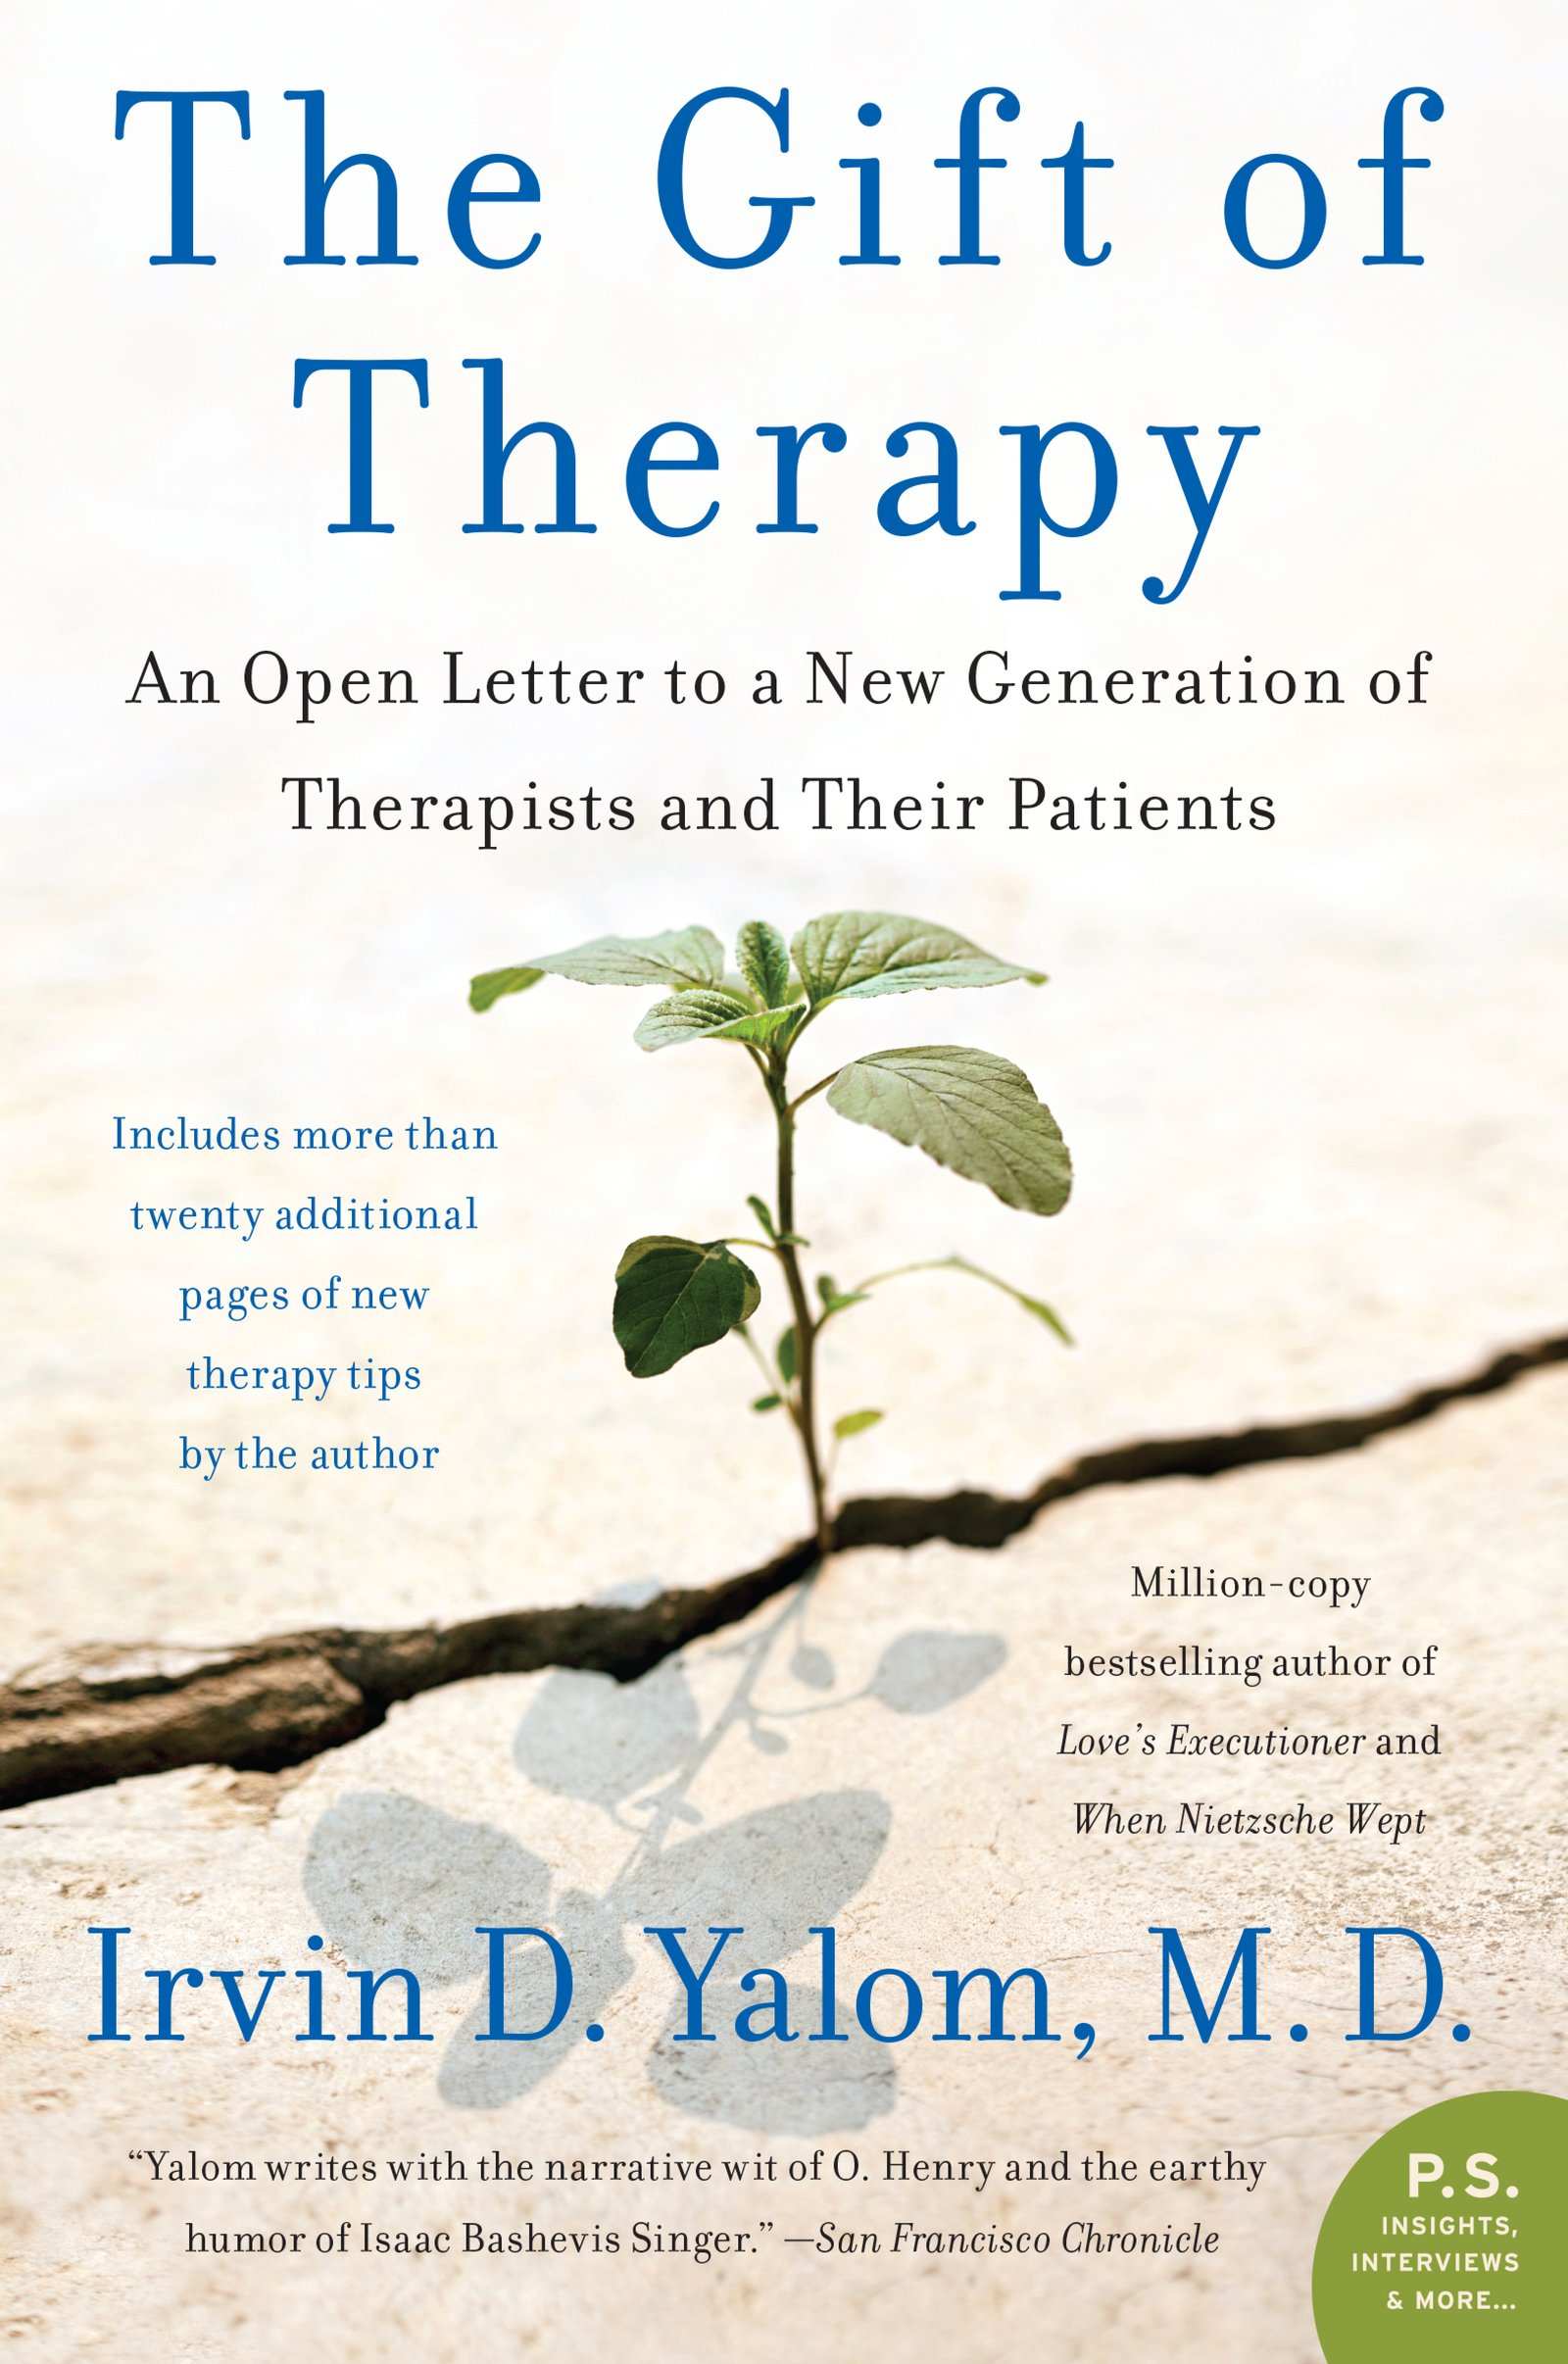 The Gift of Therapy: An Open Letter to a New